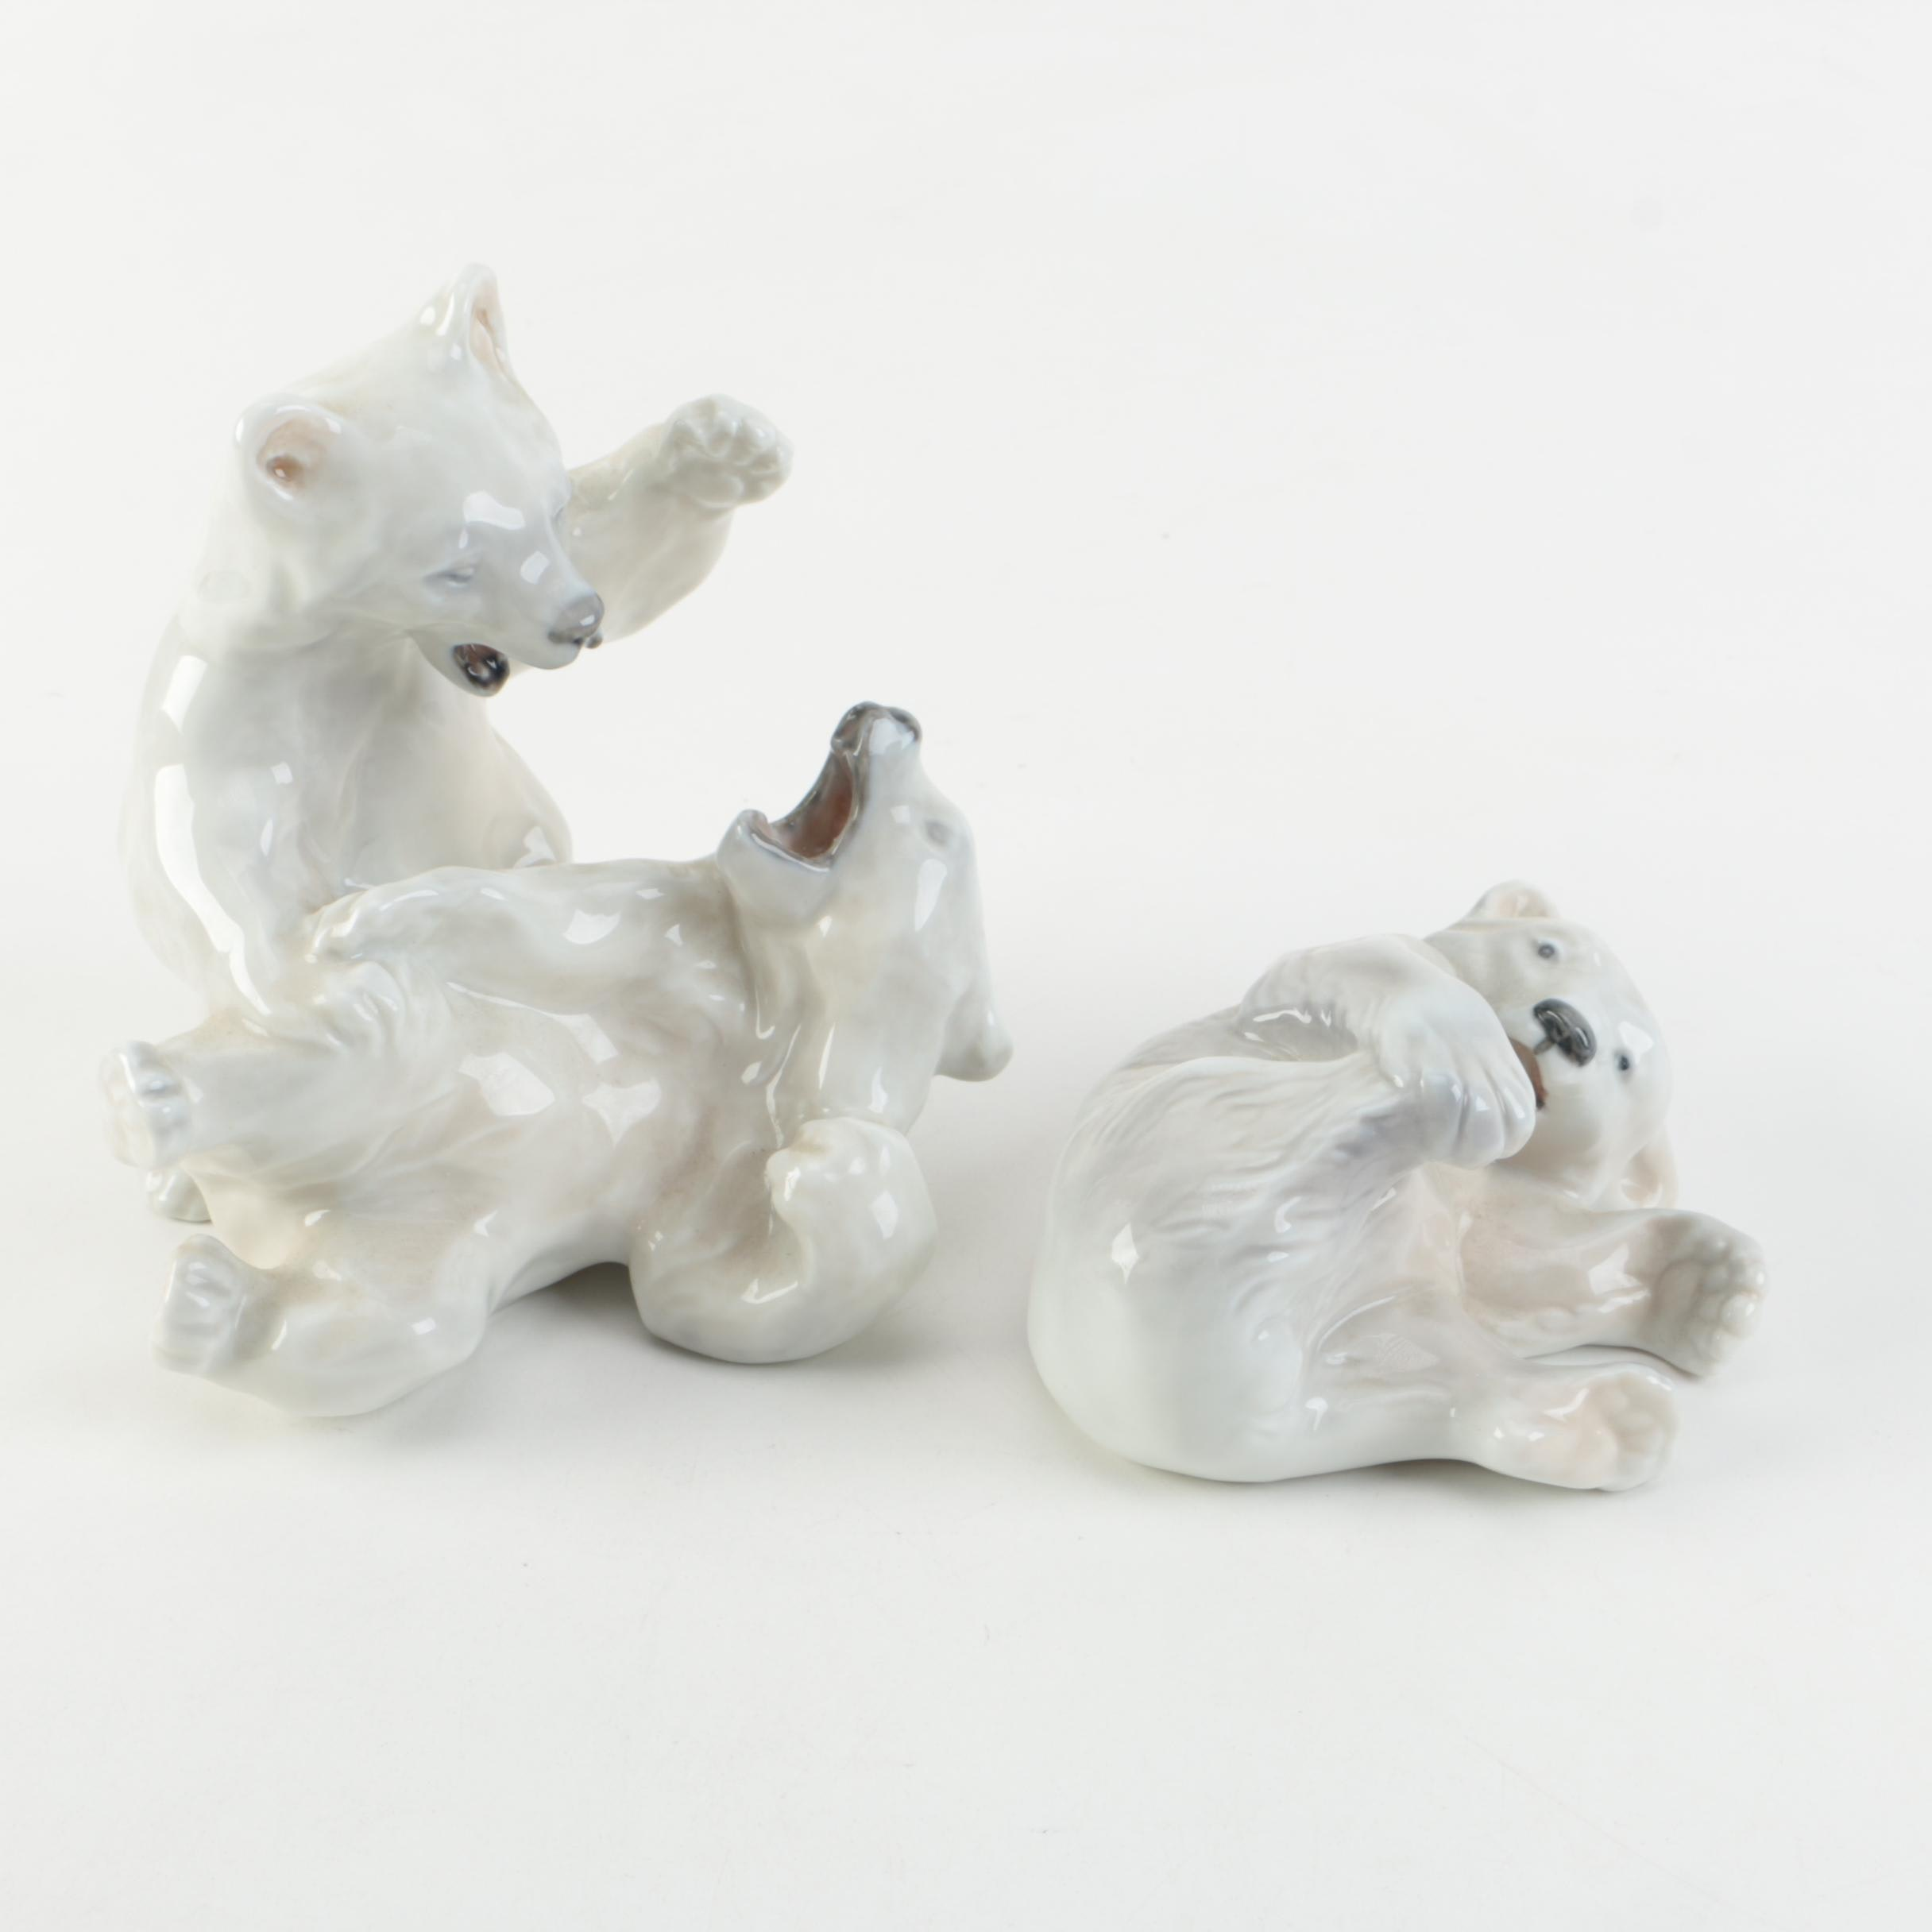 Vintage Royal Copenhagen Polar Bear Cub Figurines